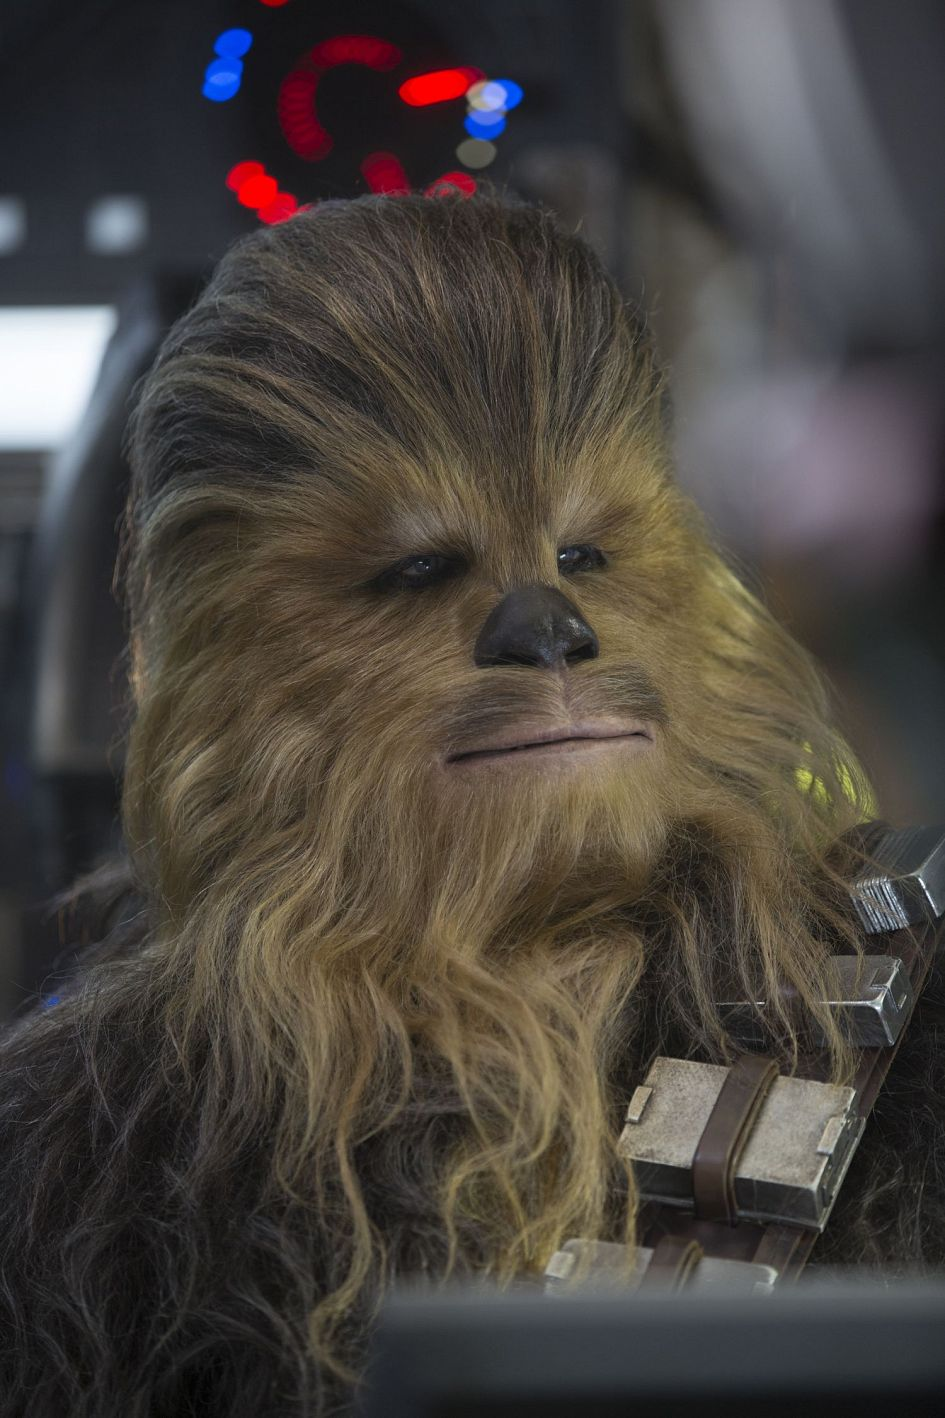 Star Wars 7 : six nouvelles images ! Star-Wars-7-Chewbacca